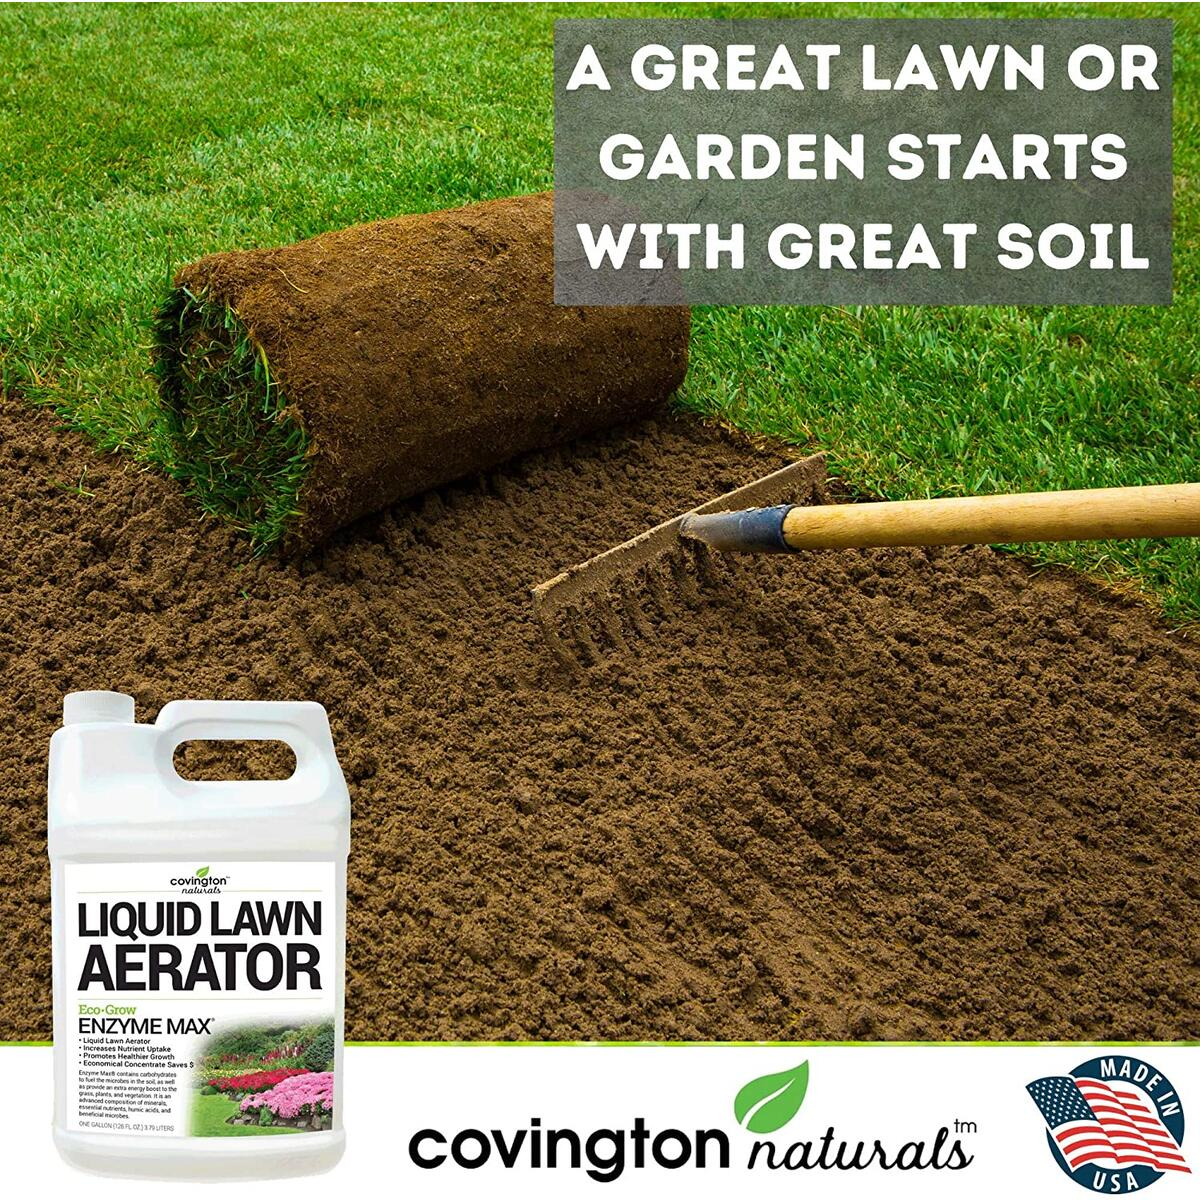 Liquid Aerator (32oz) - Liquid Lawn Aerator Loosens & Conditions Compacted Soil for Increased Nutrient Uptake - USA Made, OMRI Listed, Minerals, Nutrients, Humic Acids, Microbes for Healthier Growth